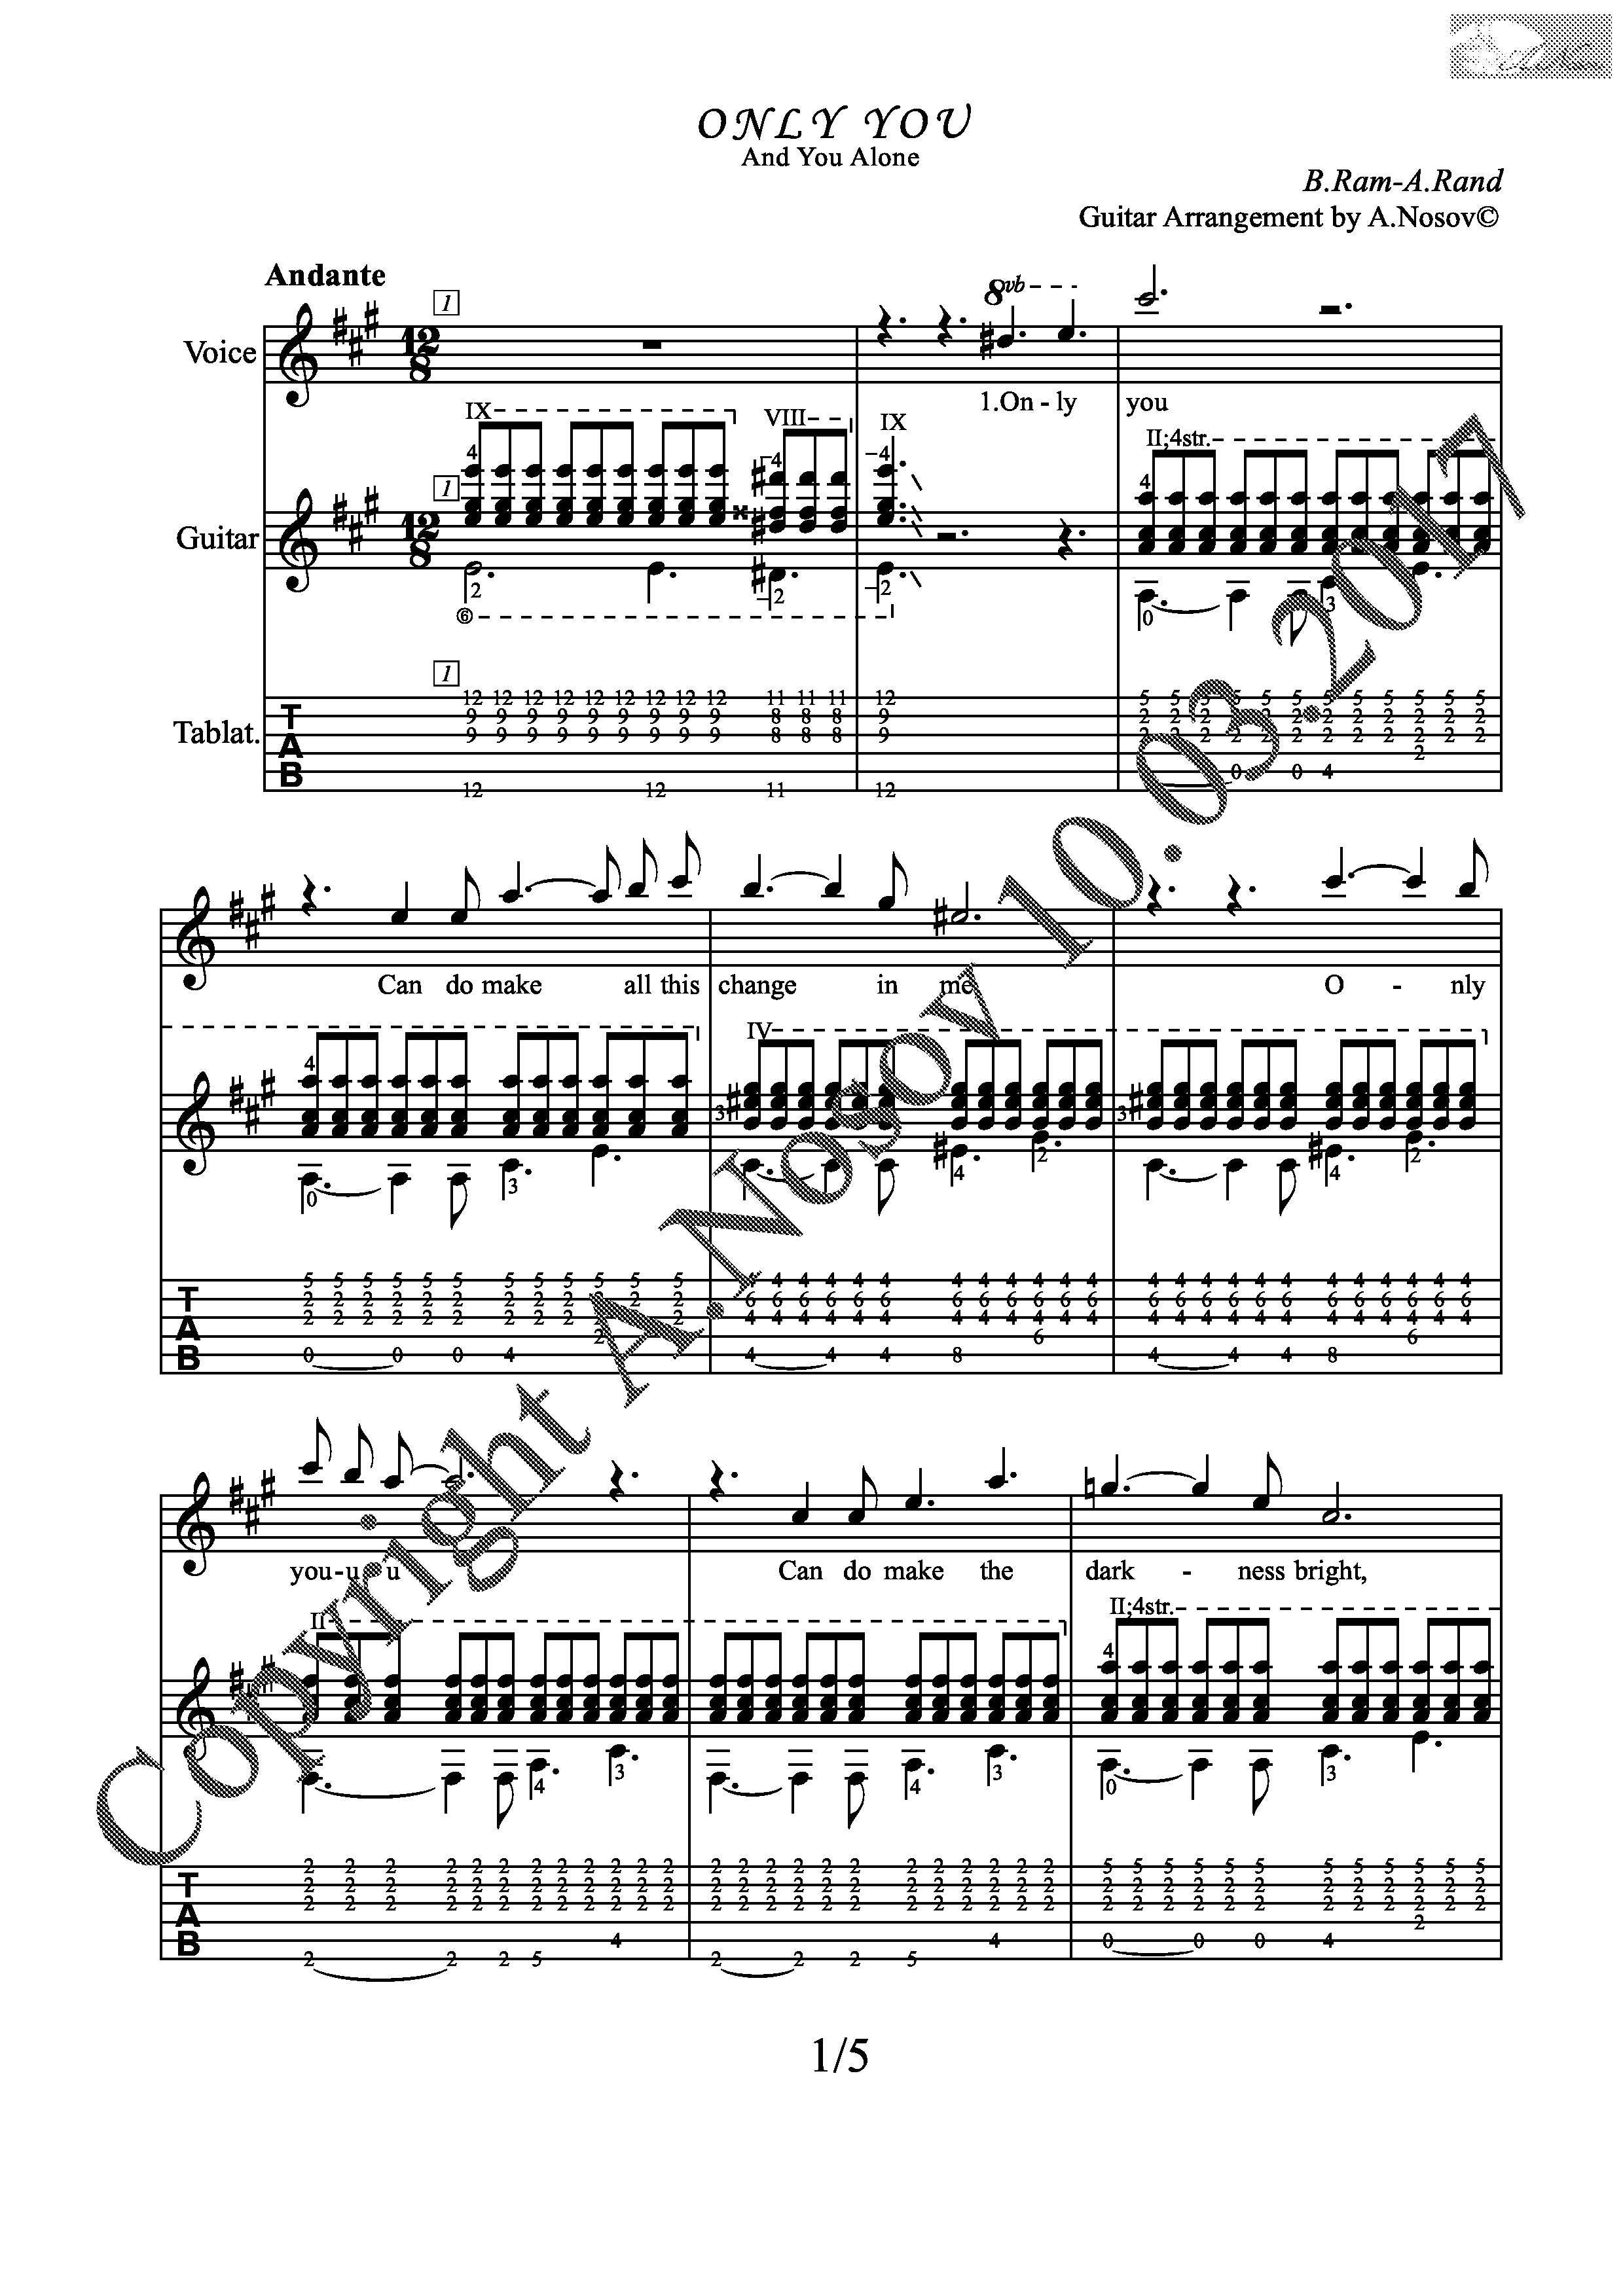 Only You (Sheet music for vocals and guitar)